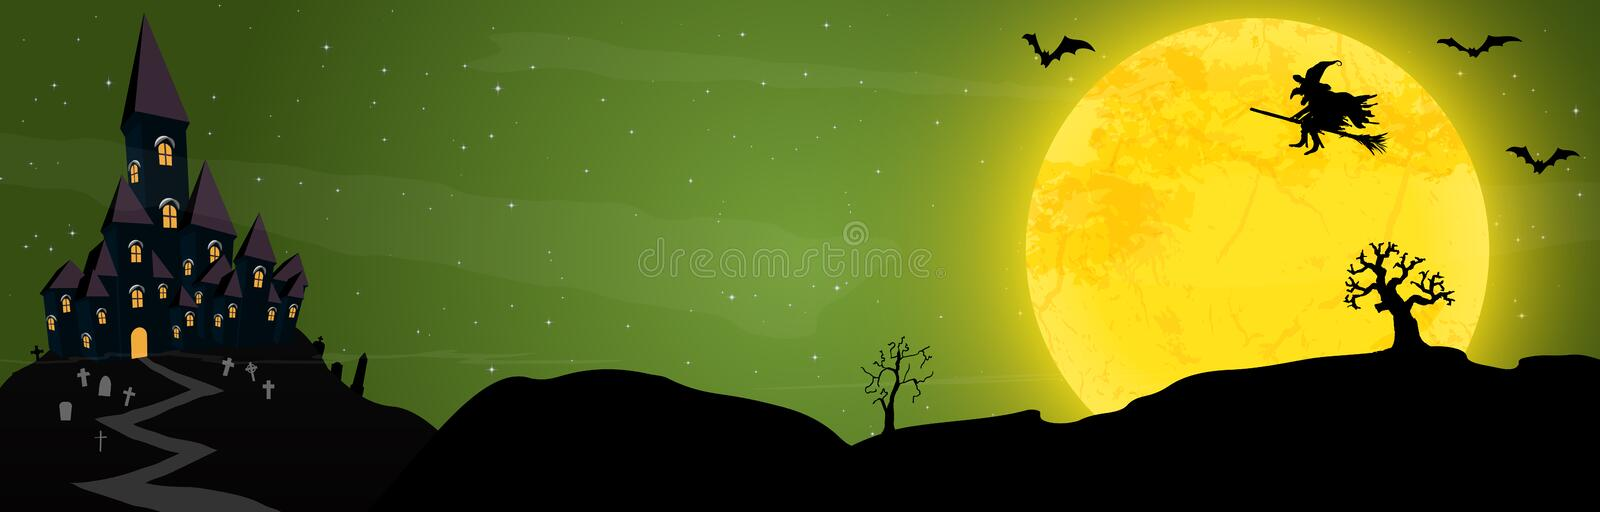 Halloween castle and witch in front of a full moon stock illustration